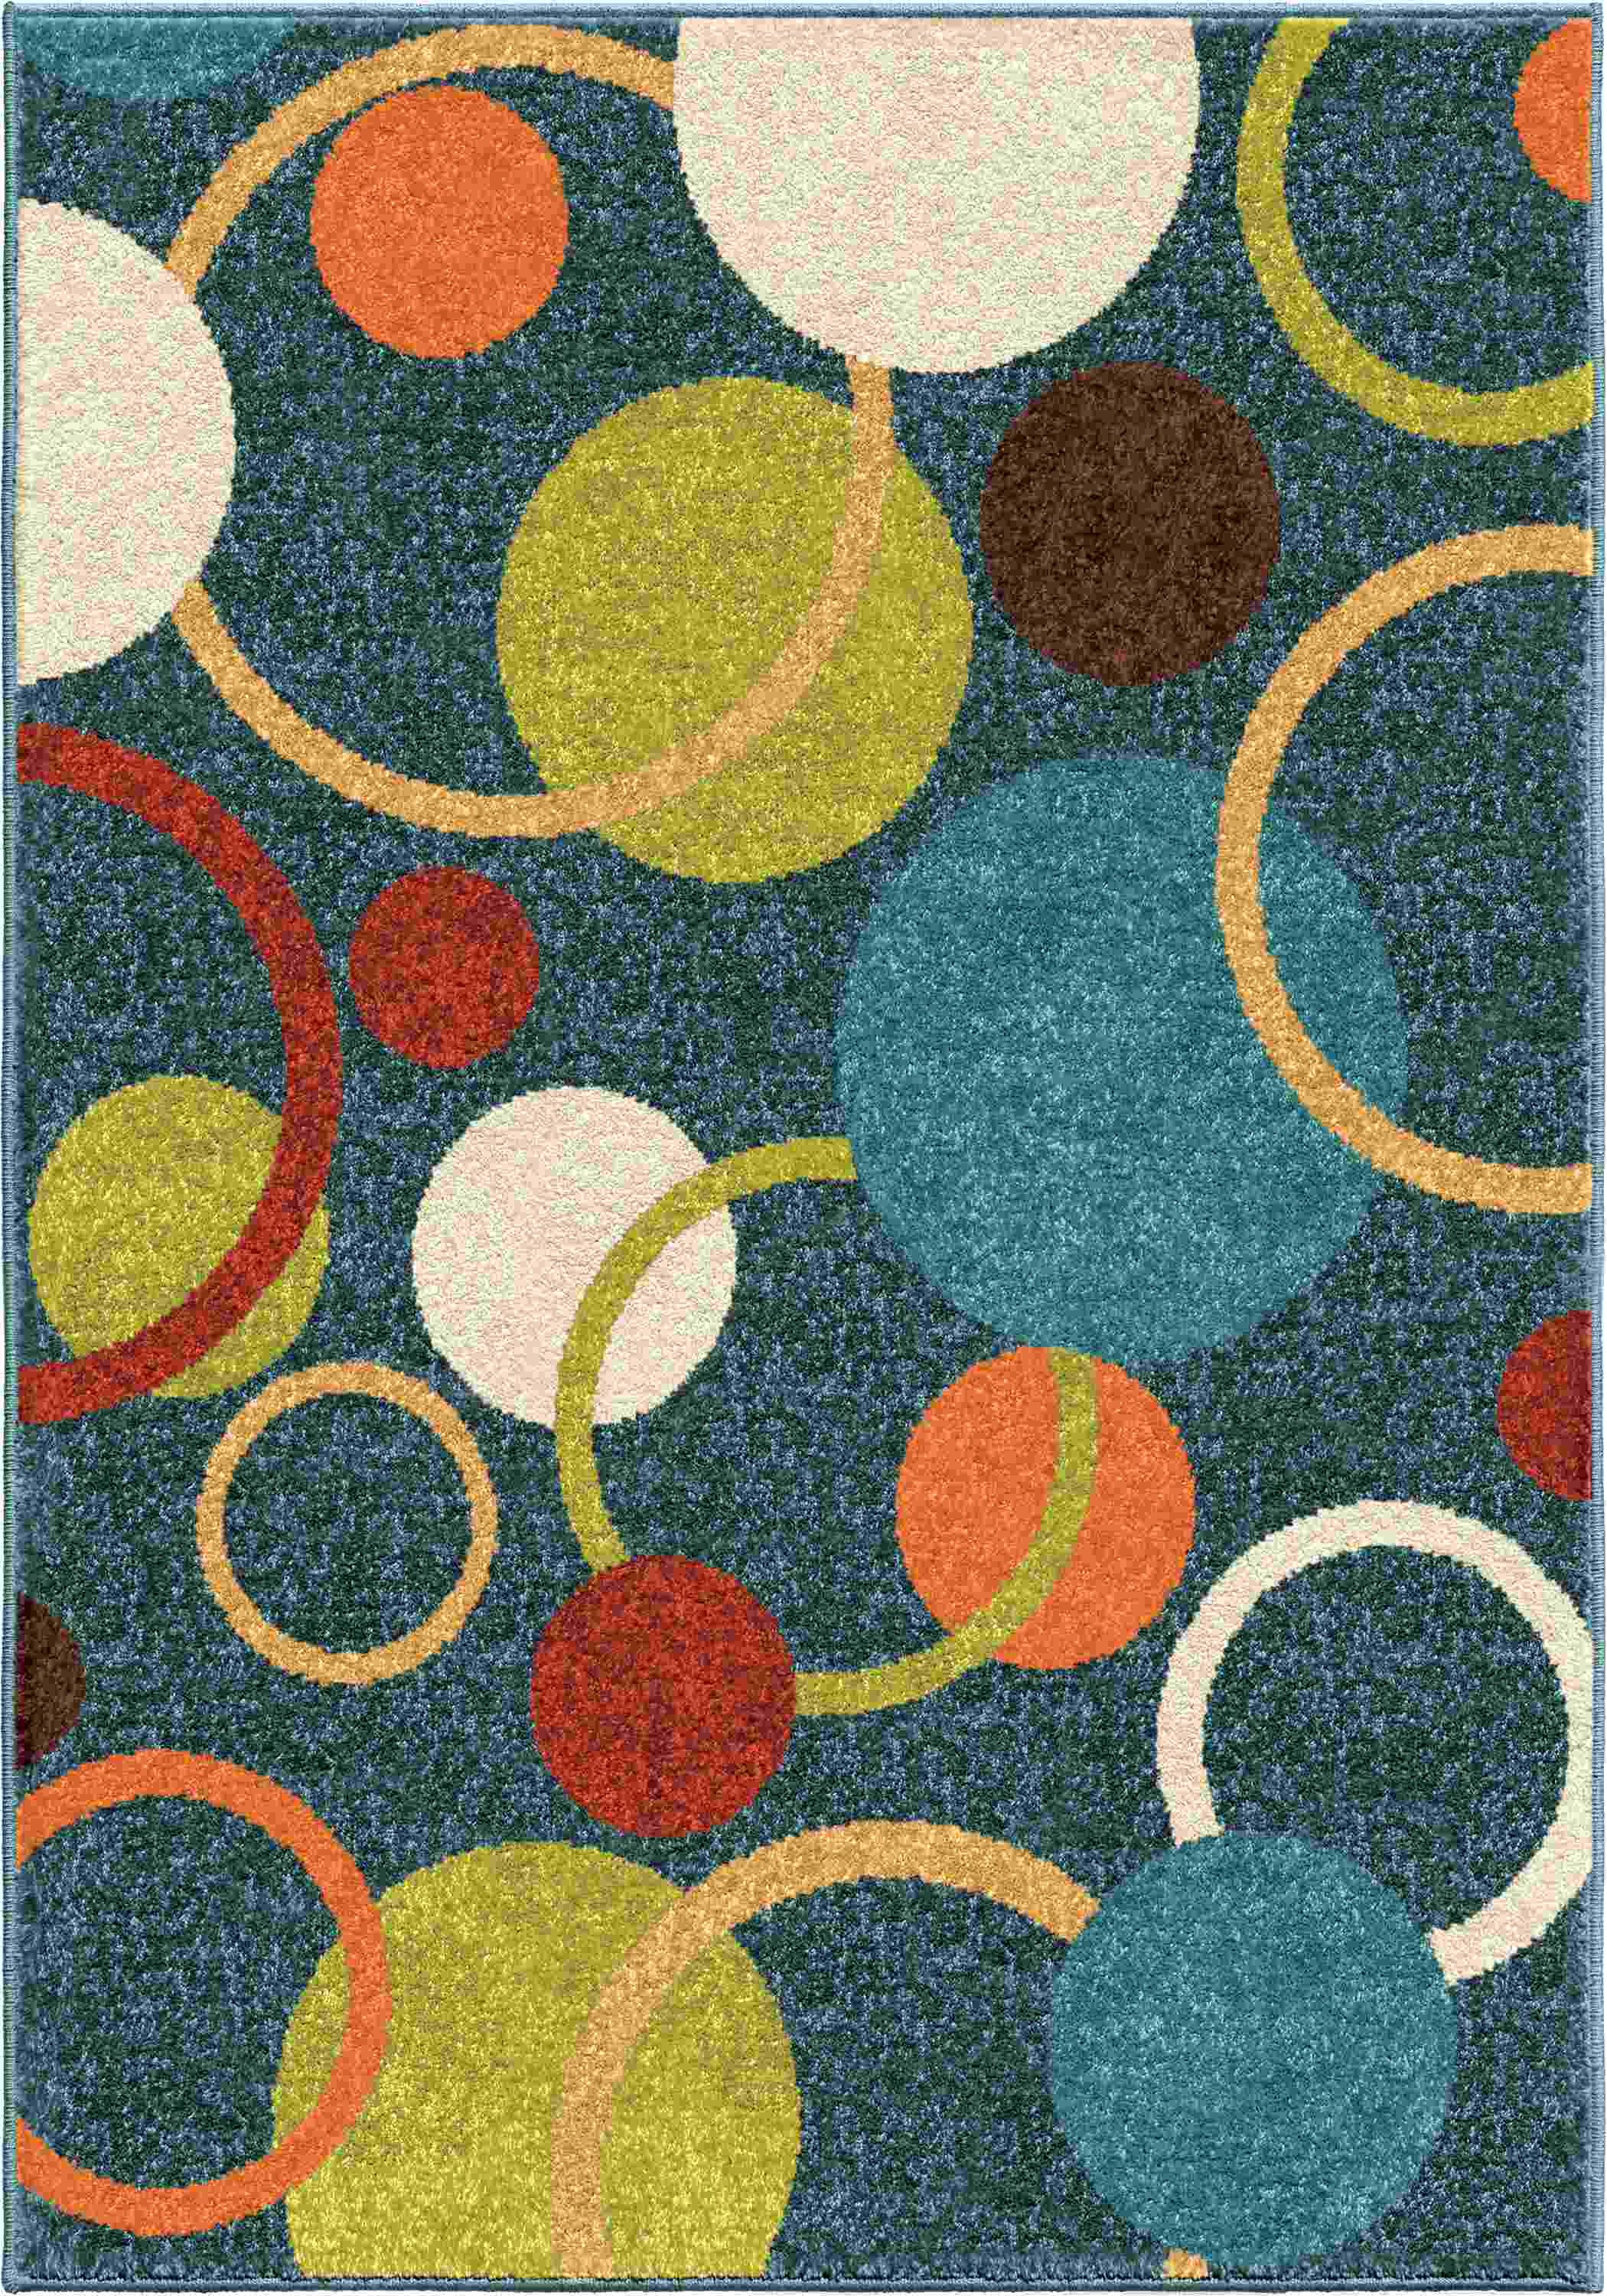 Rugs For Kids Kids Rugs Area Rugs For Sale Boys Girls Rugs Online